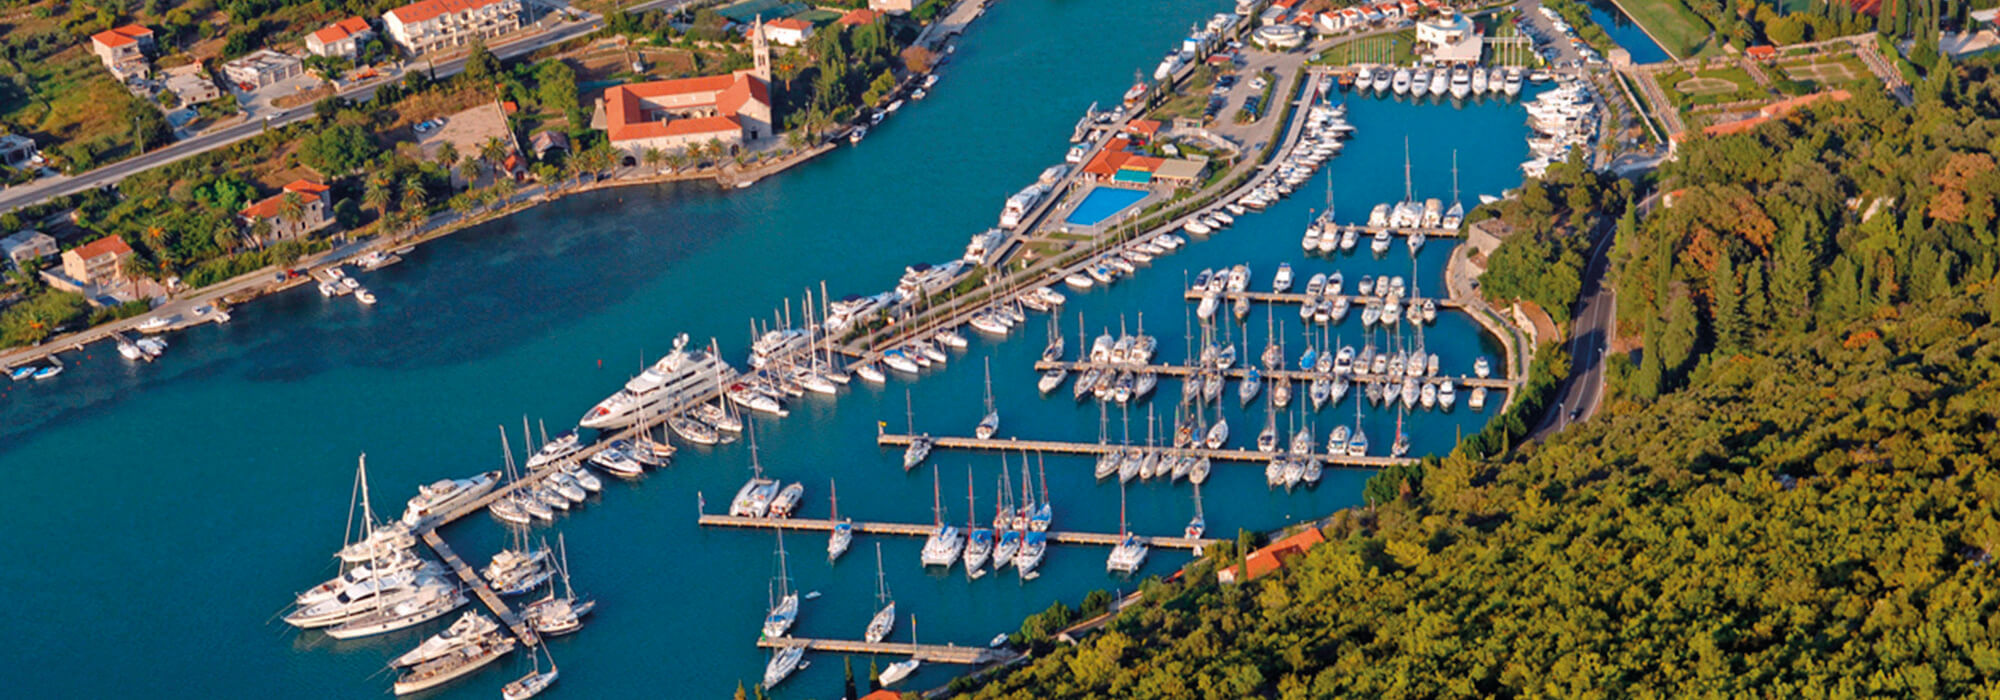 sailing-and-yacht-charter-dubrovnik-in-croatia_12